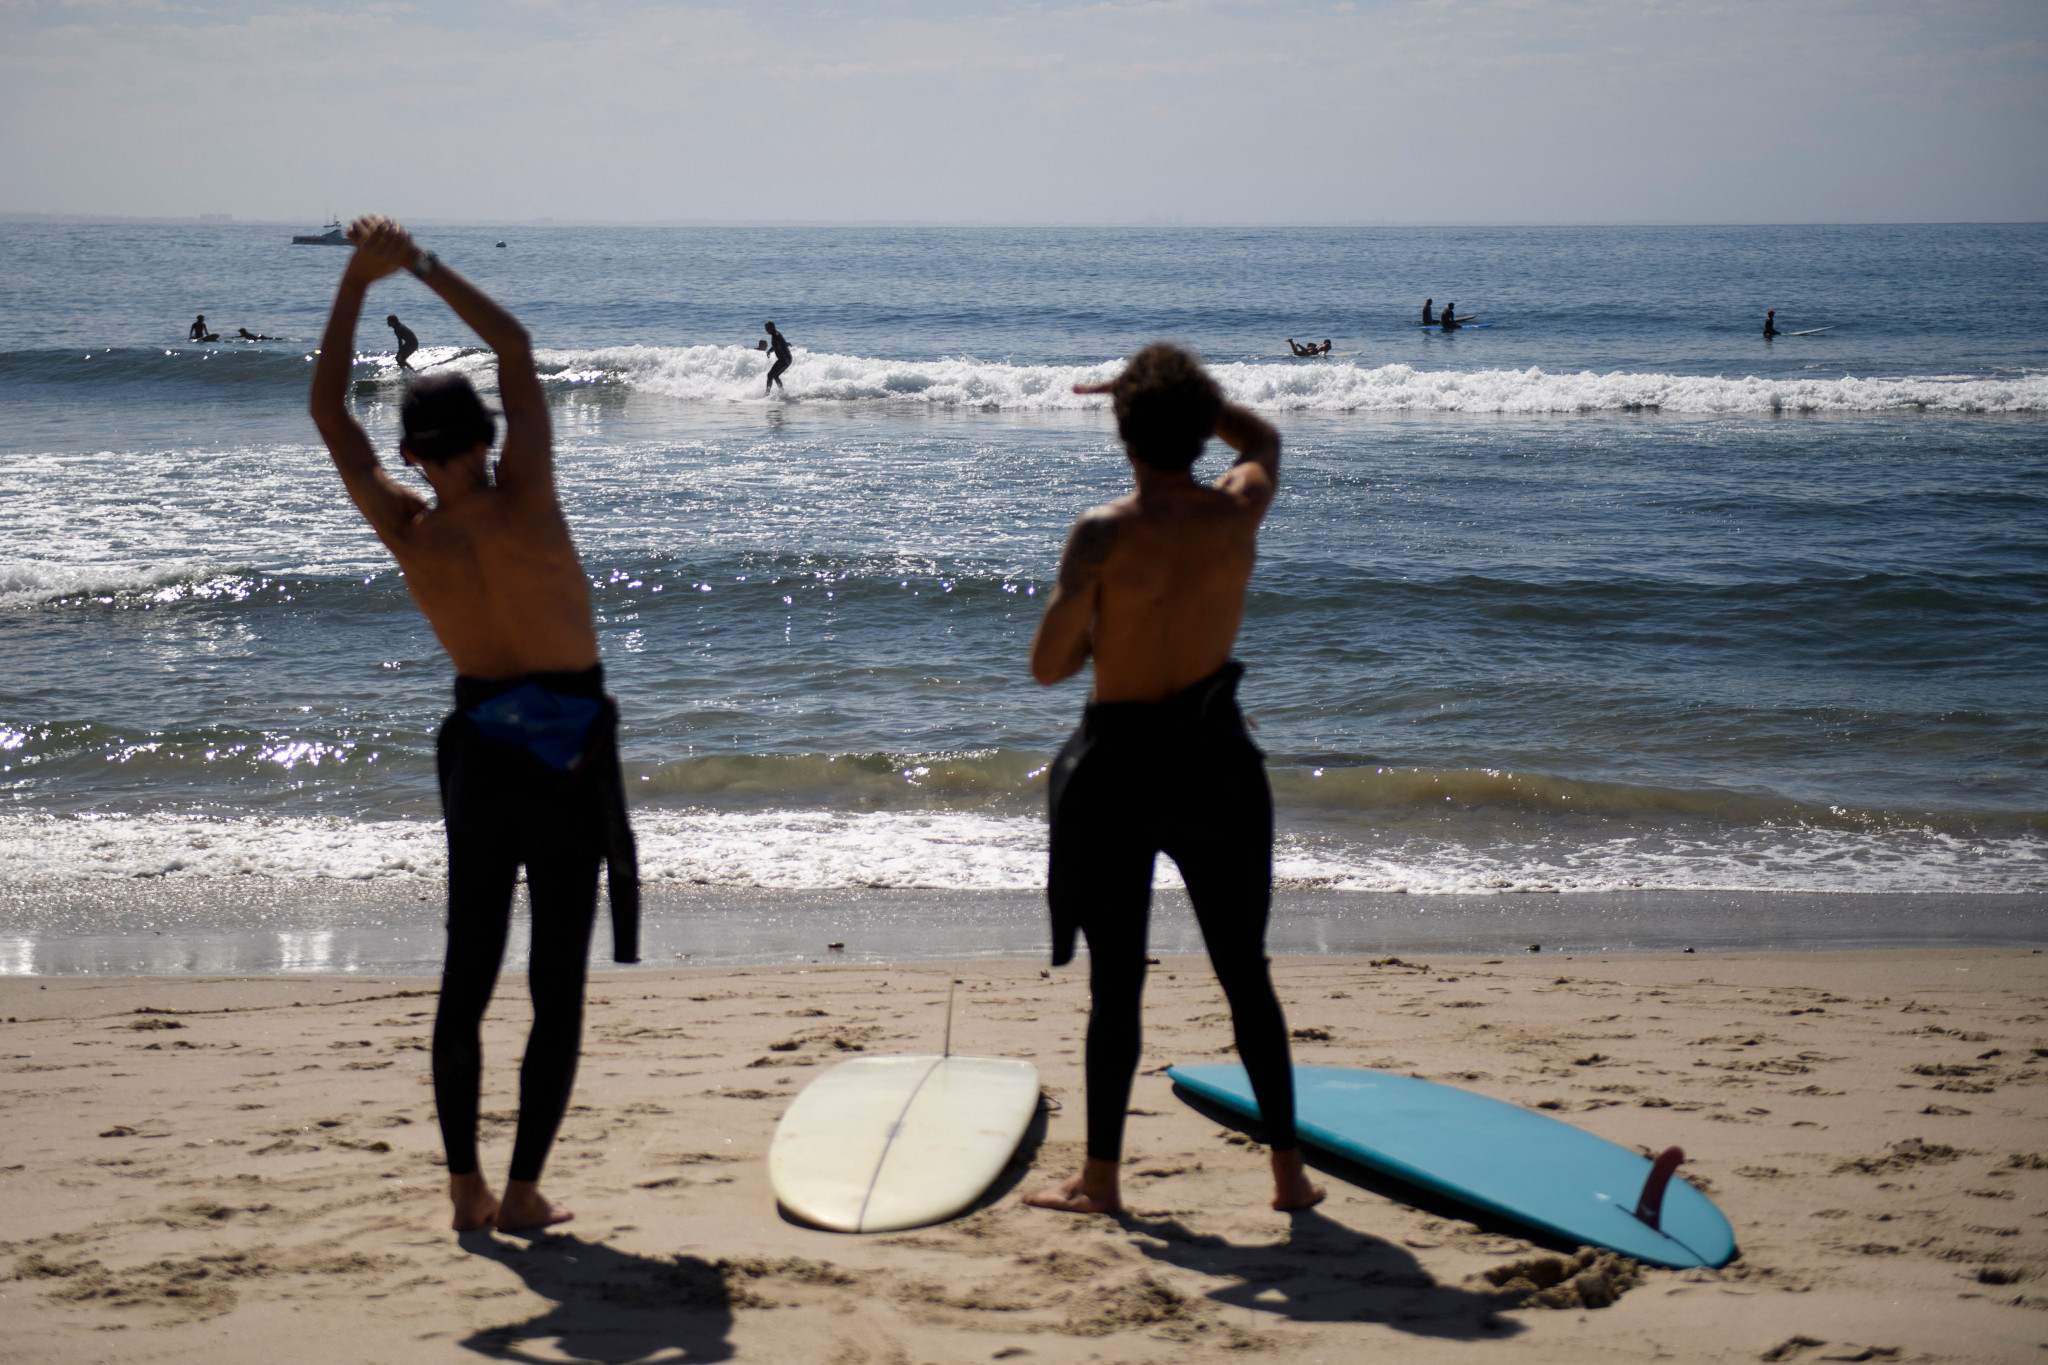 International Surfing Day celebrated with accessibility and inclusion highlighted